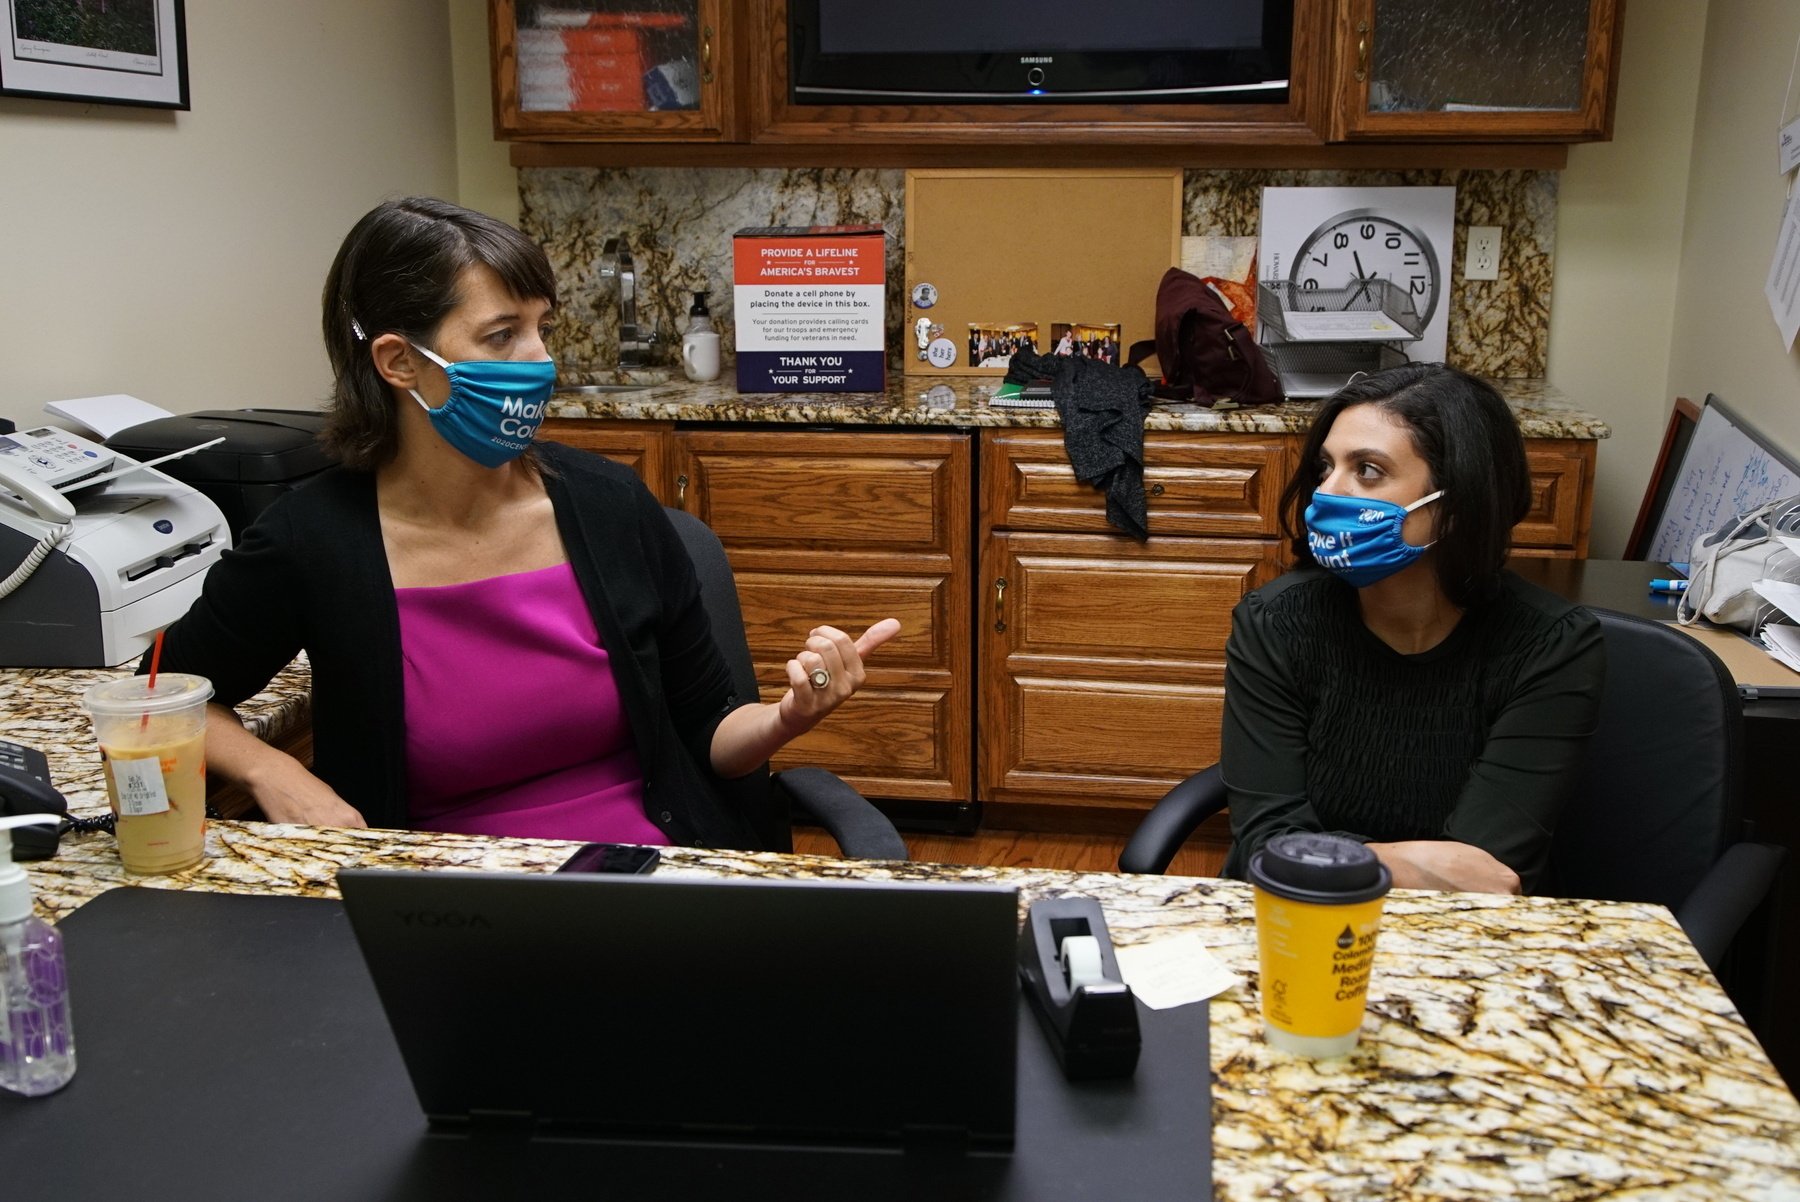 State Rep. Lindsey LaPointe (left) and her chief of staff, Jessica Genova, at her office at 6319 N. Milwaukee Ave.